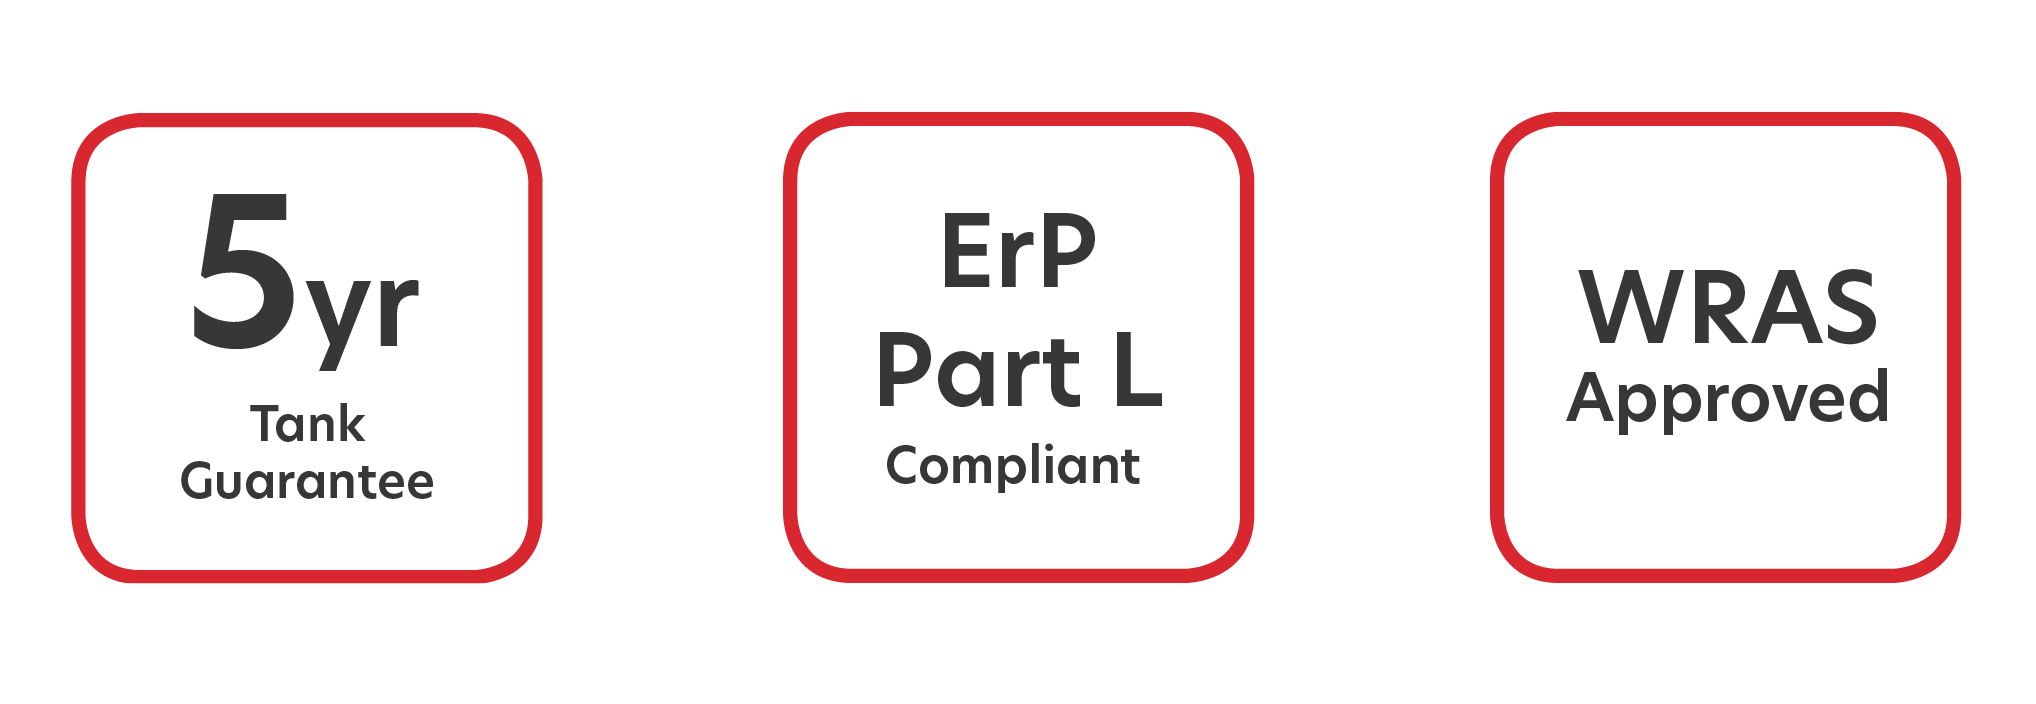 5yr Tank Guarantee ErP Part L Compliant WRAS Approved